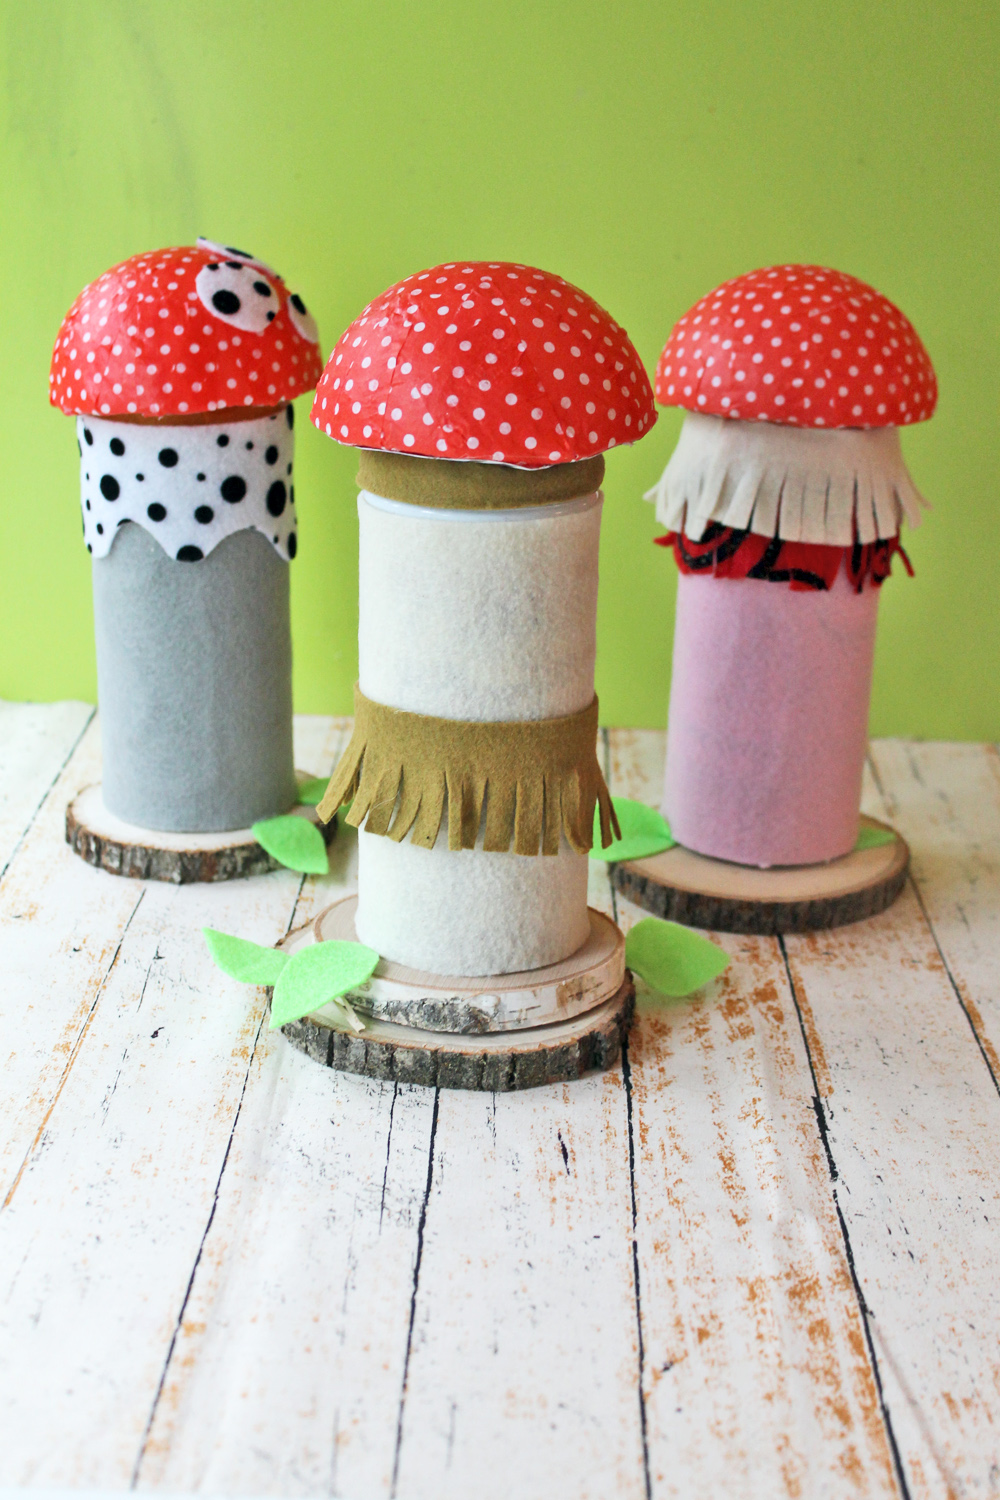 Recycle empty @Piroulinecookie tins into mushrooms using this tutorial by @punkprojects